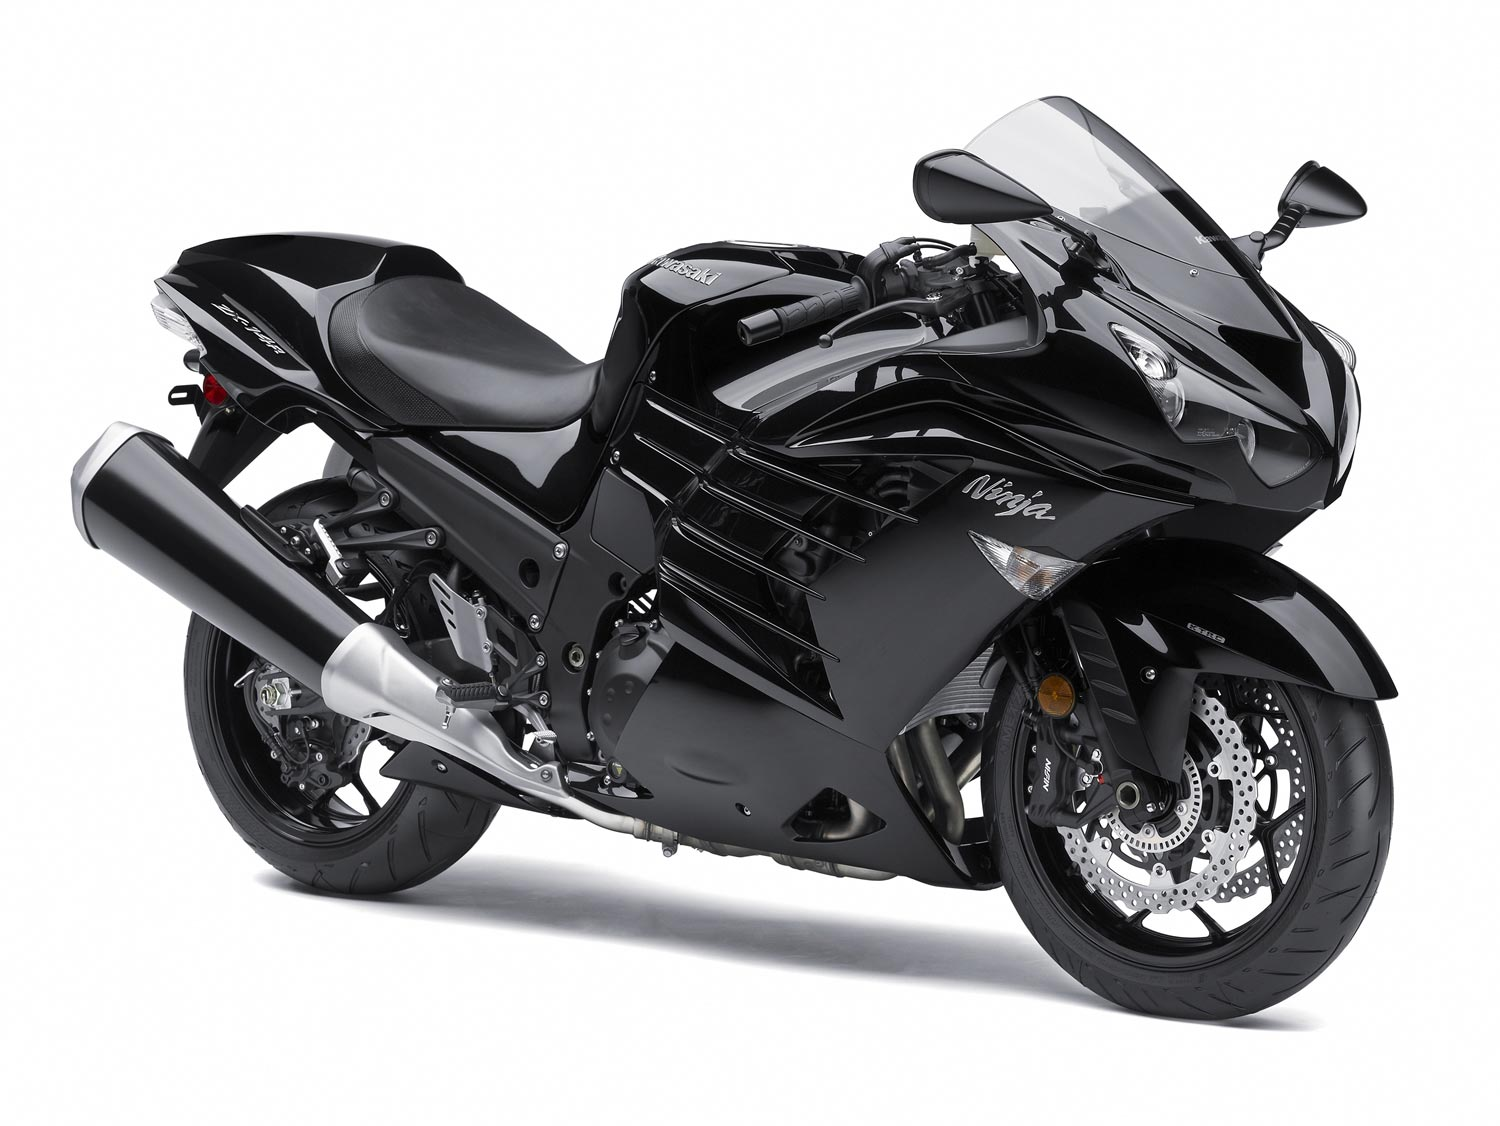 2012 Kawasaki ZX-14R Breaks Cover - Asphalt & Rubber